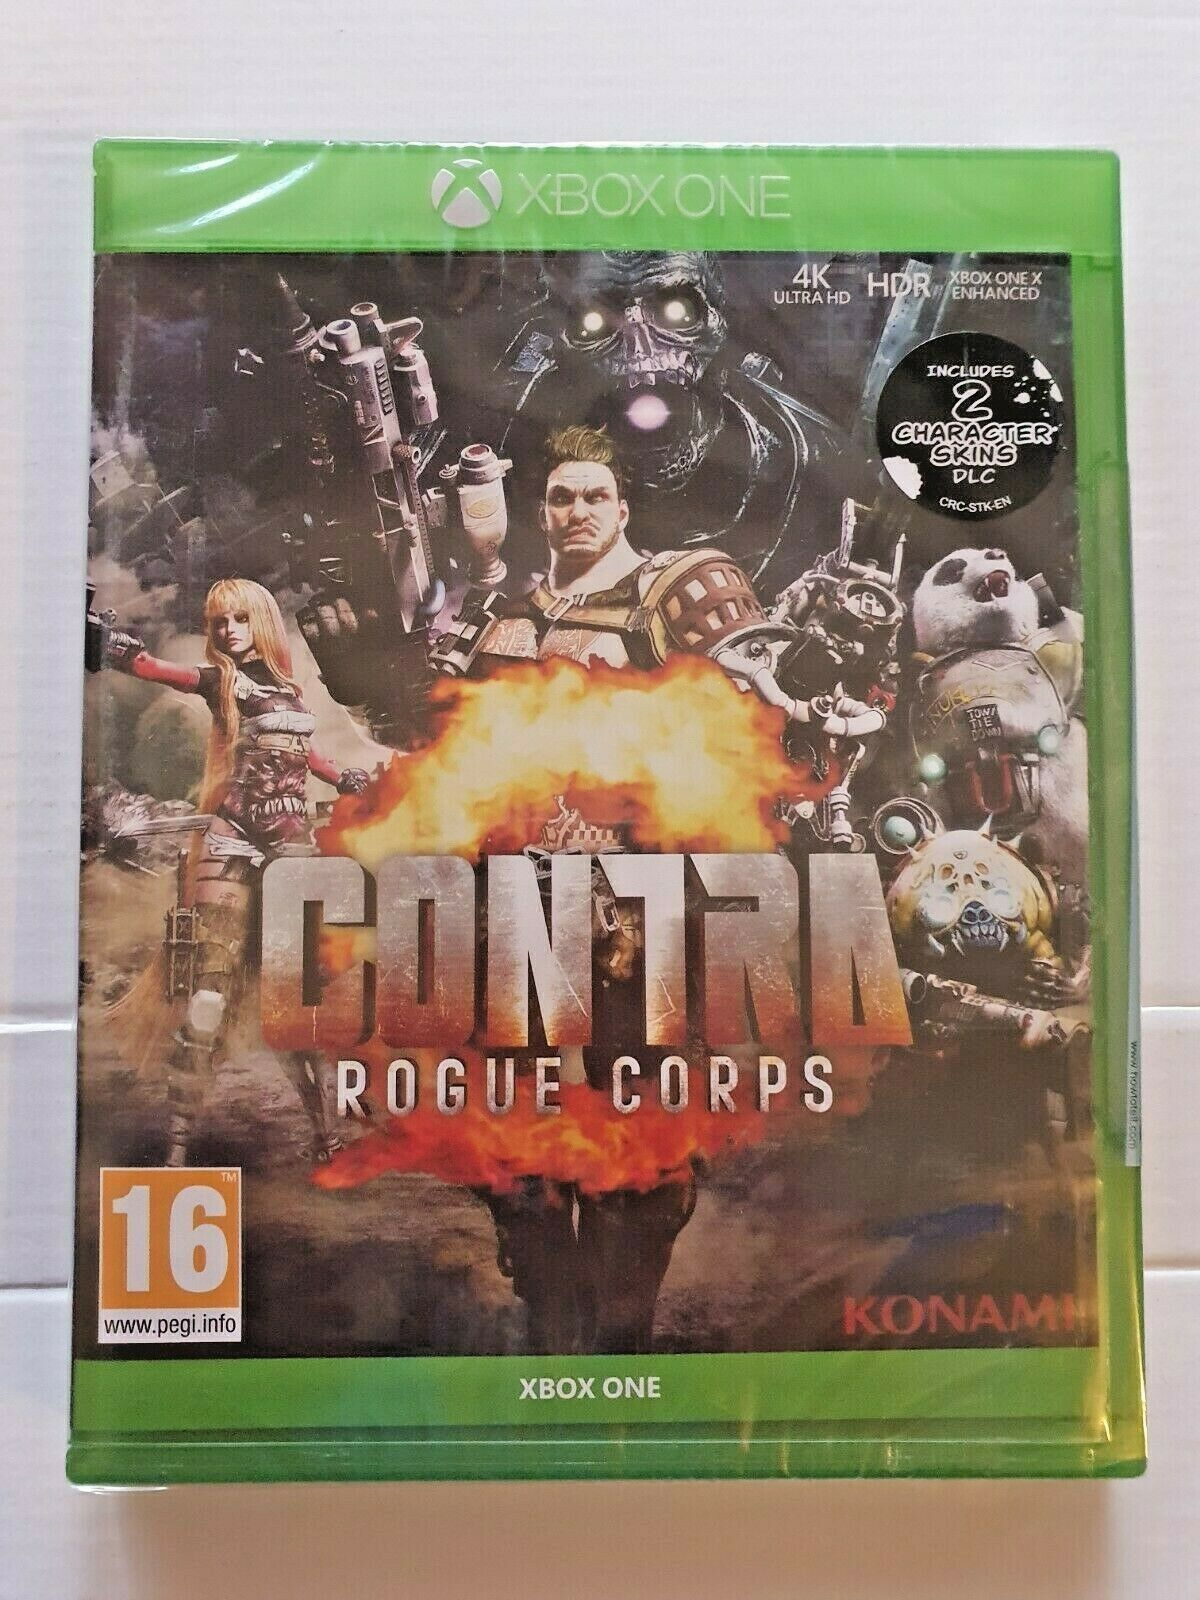 *New & Sealed* Xbox One / Series X Game - Contra: Rogue Corps - 4K HDR - 16+